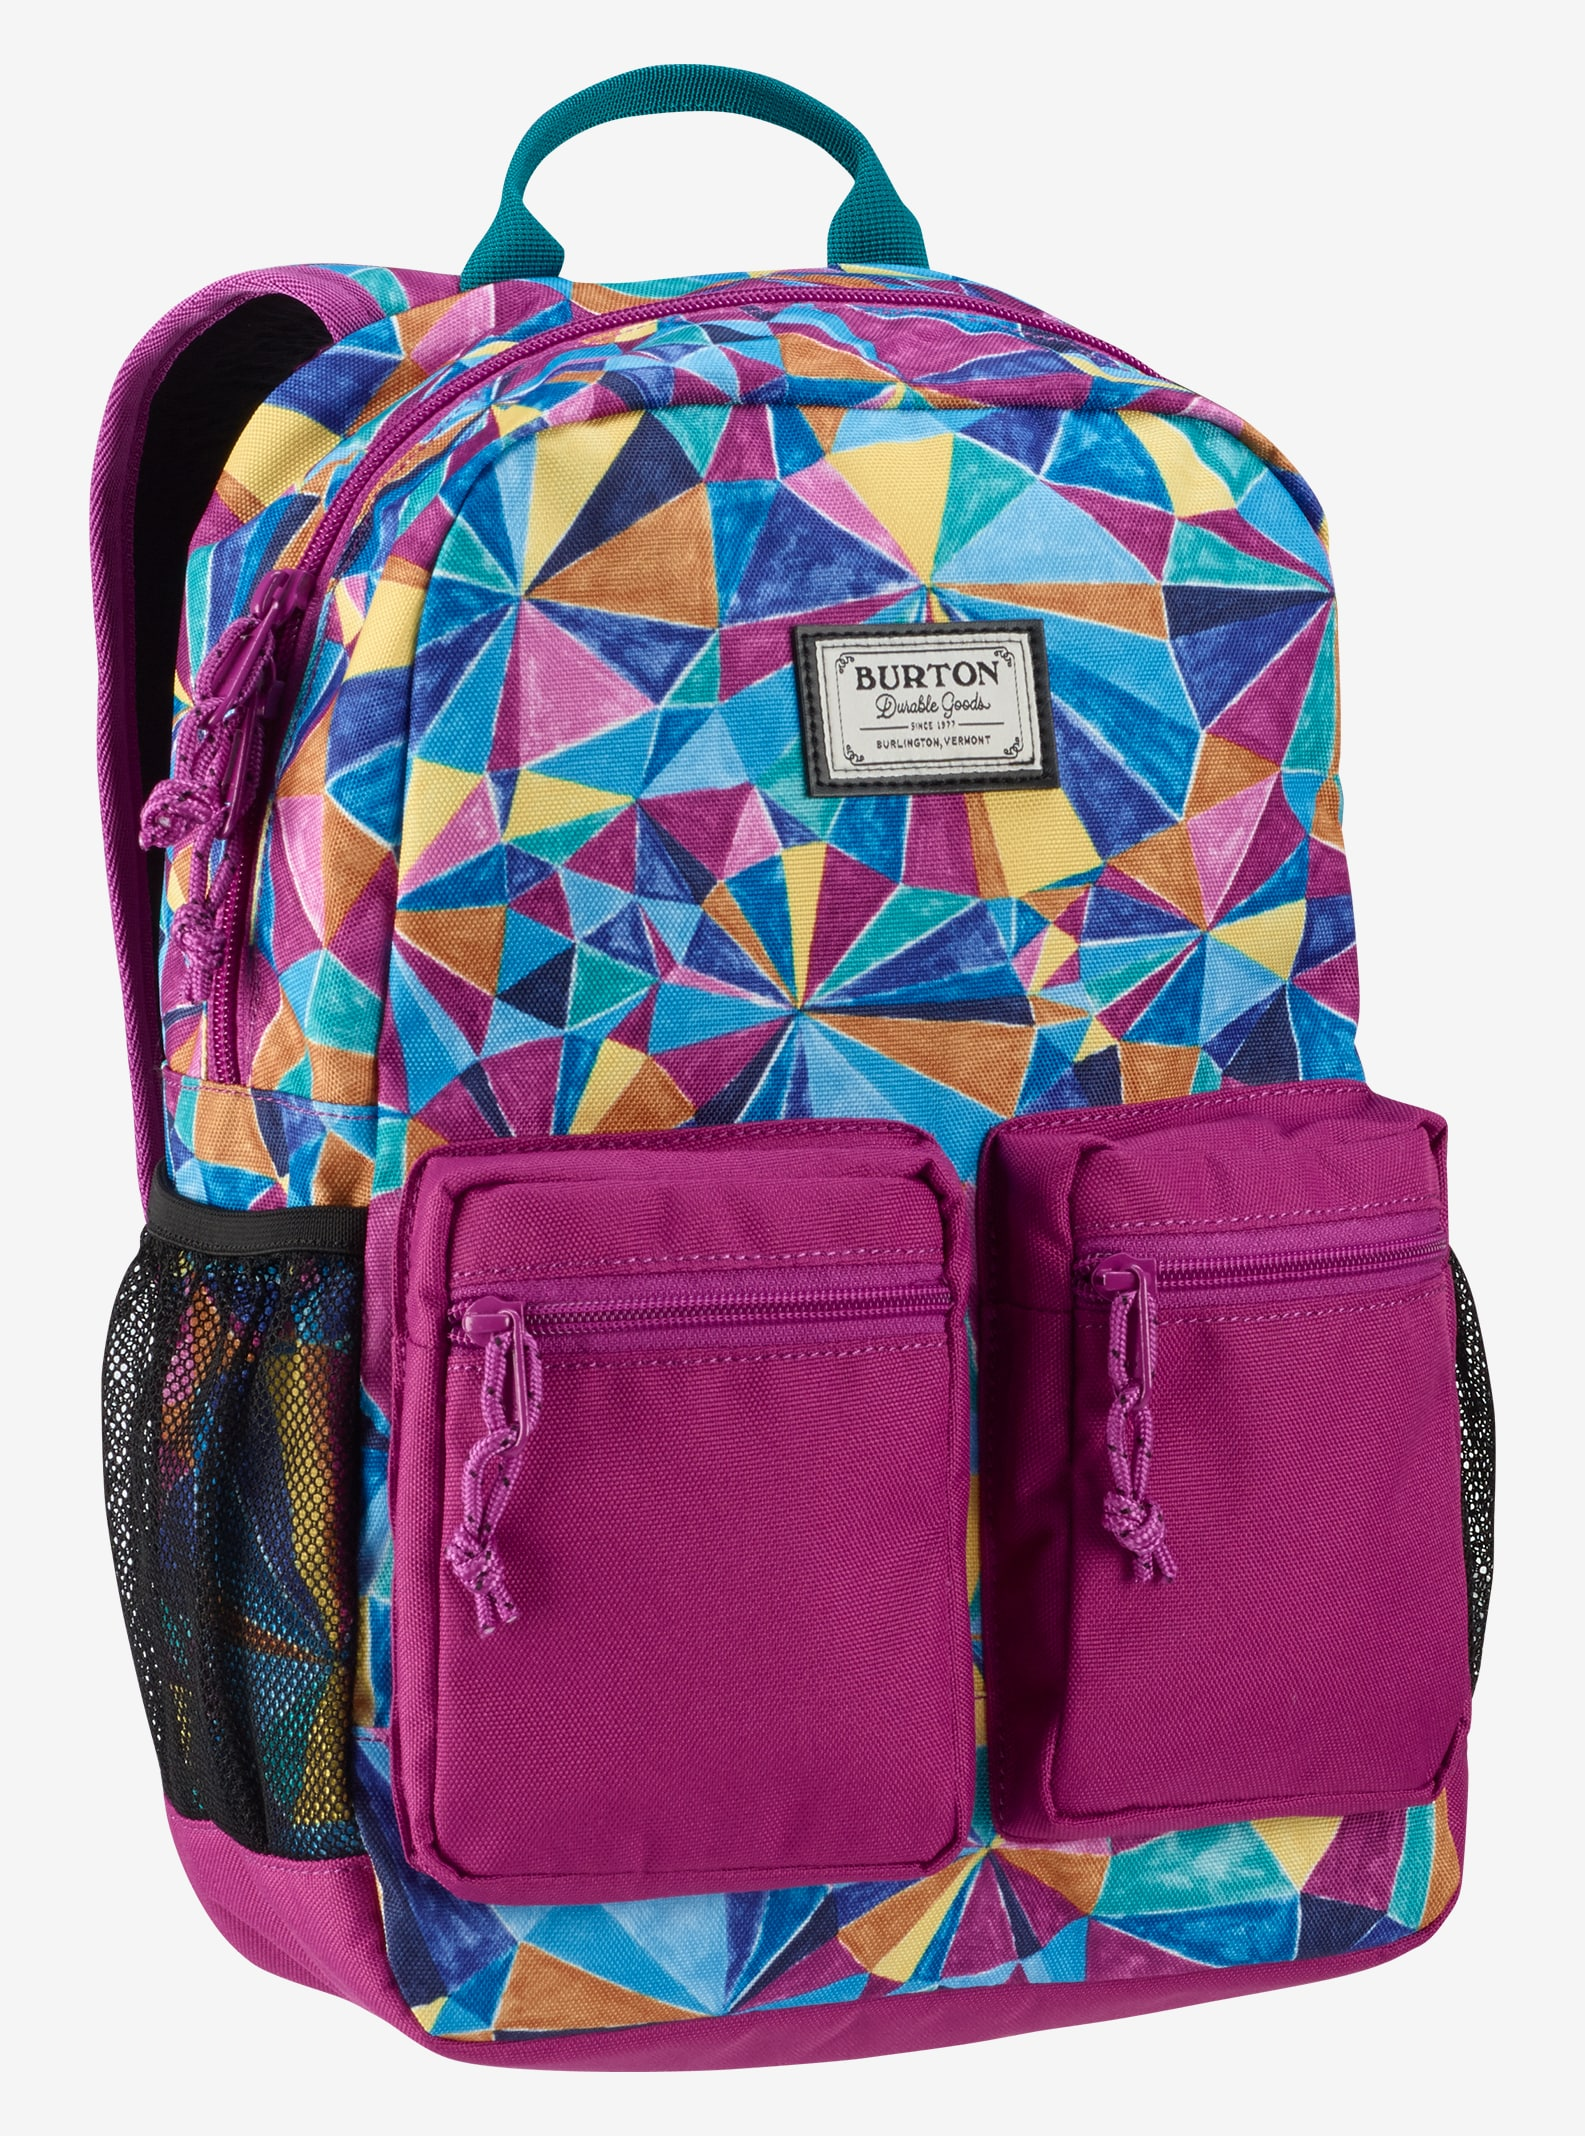 Kids' Backpacks | Burton Snowboards